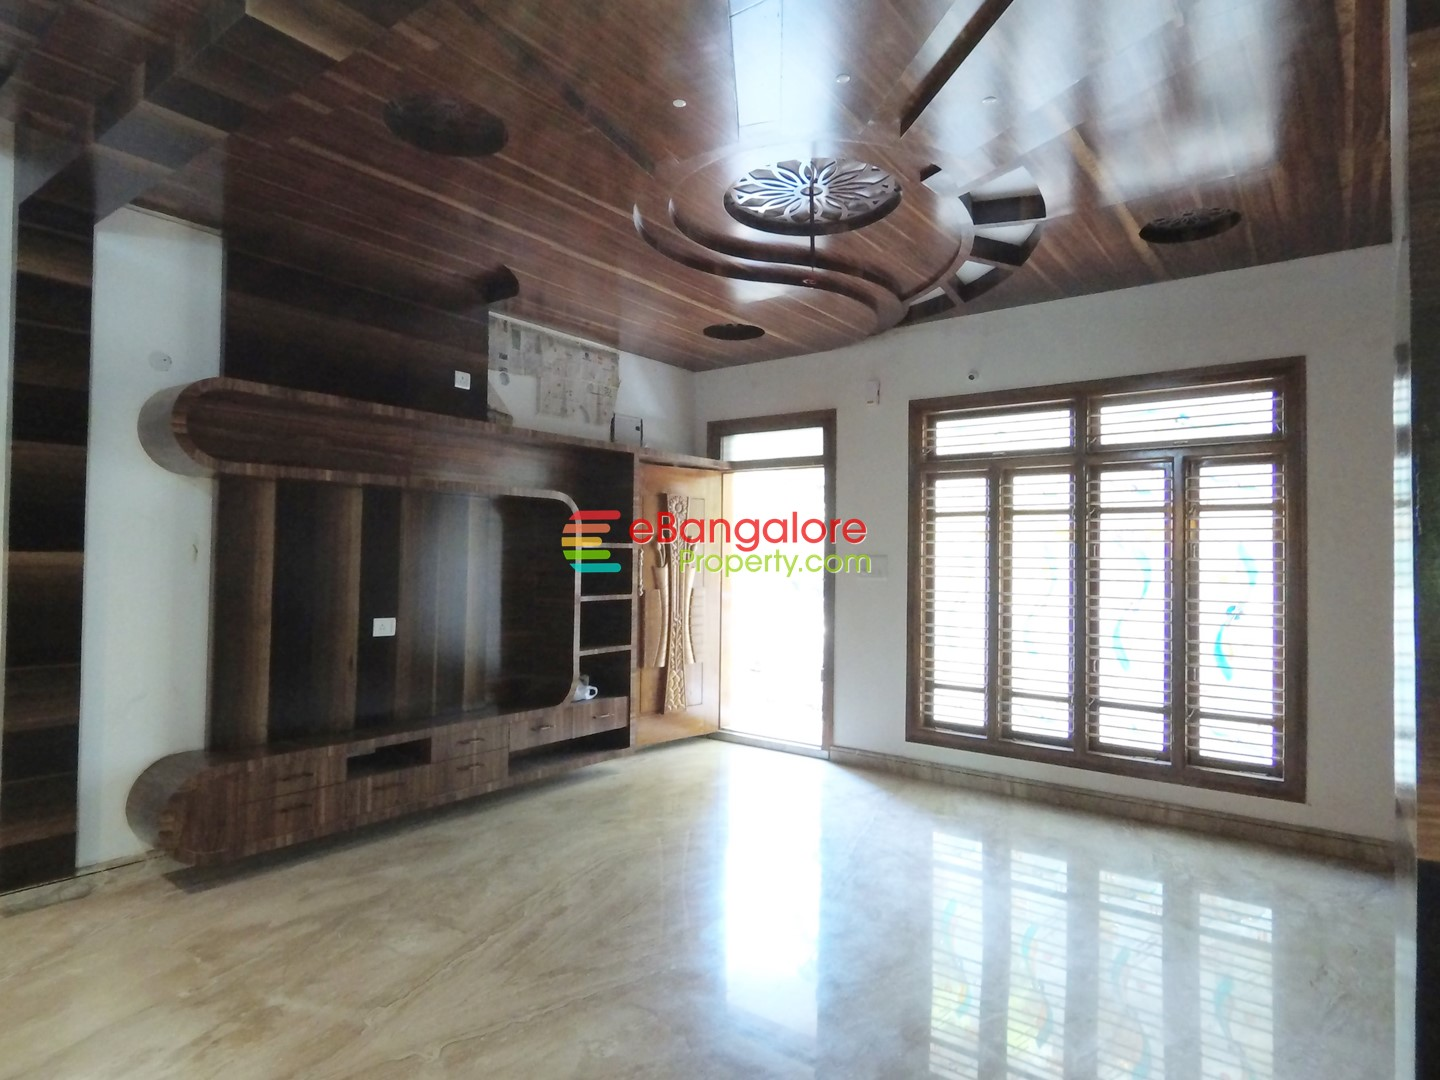 RR Nagar Lavish Home 9 – 5BHK Bungalow For Sale on 30×45 – With Lift, Gym & Home Theater